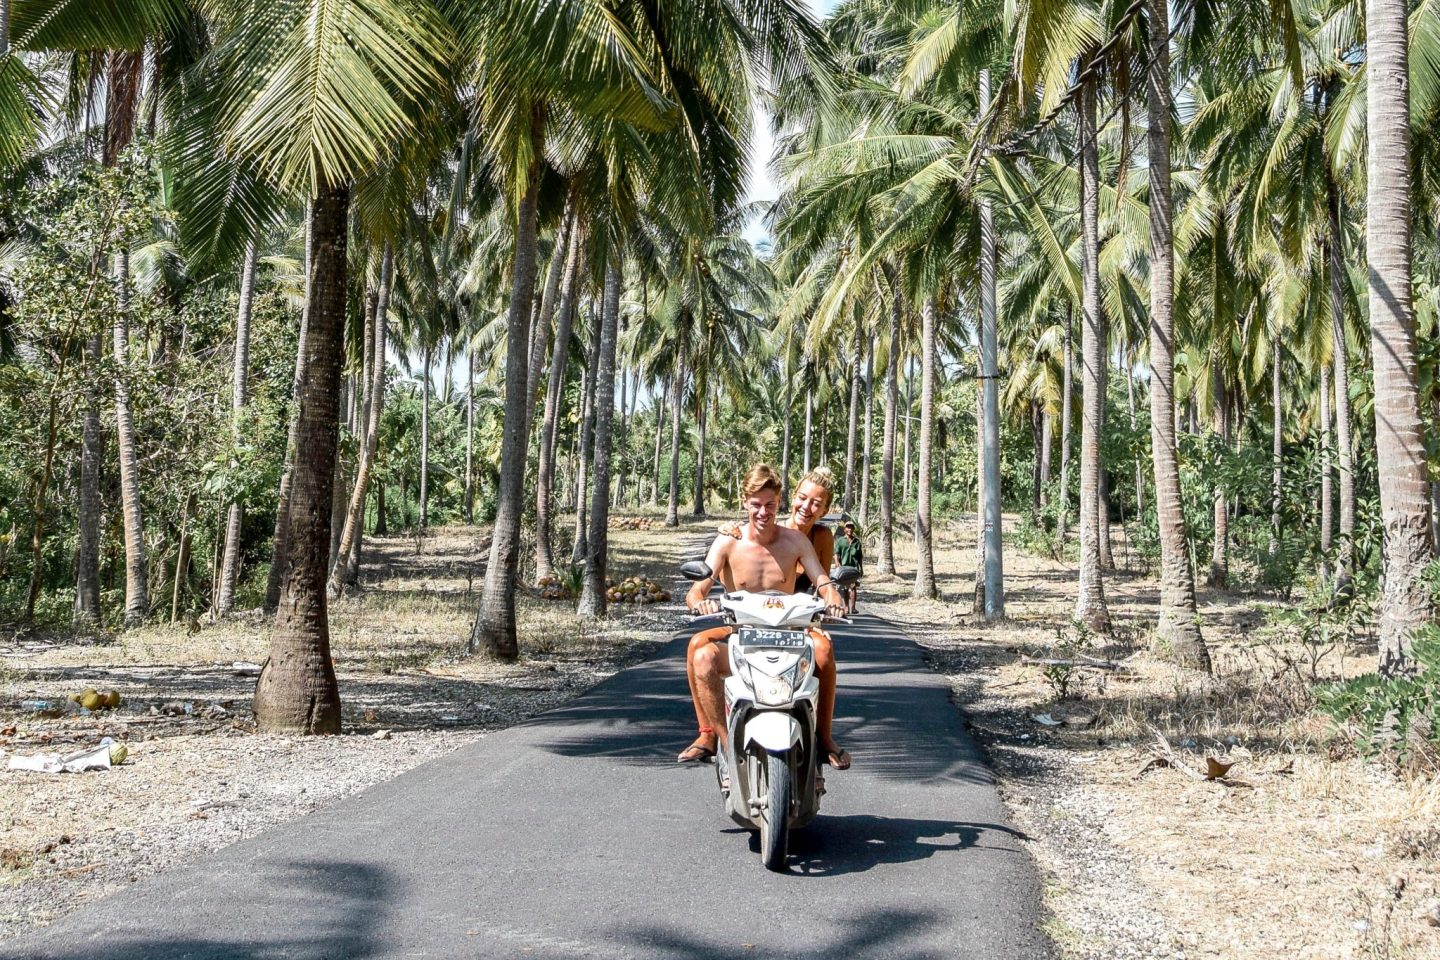 Wanderers & Warriors - Charlie & Lauren UK Travel Couple - Things To Do In Nusa Penida - Our Nusa Penida Tour Bali Scooter